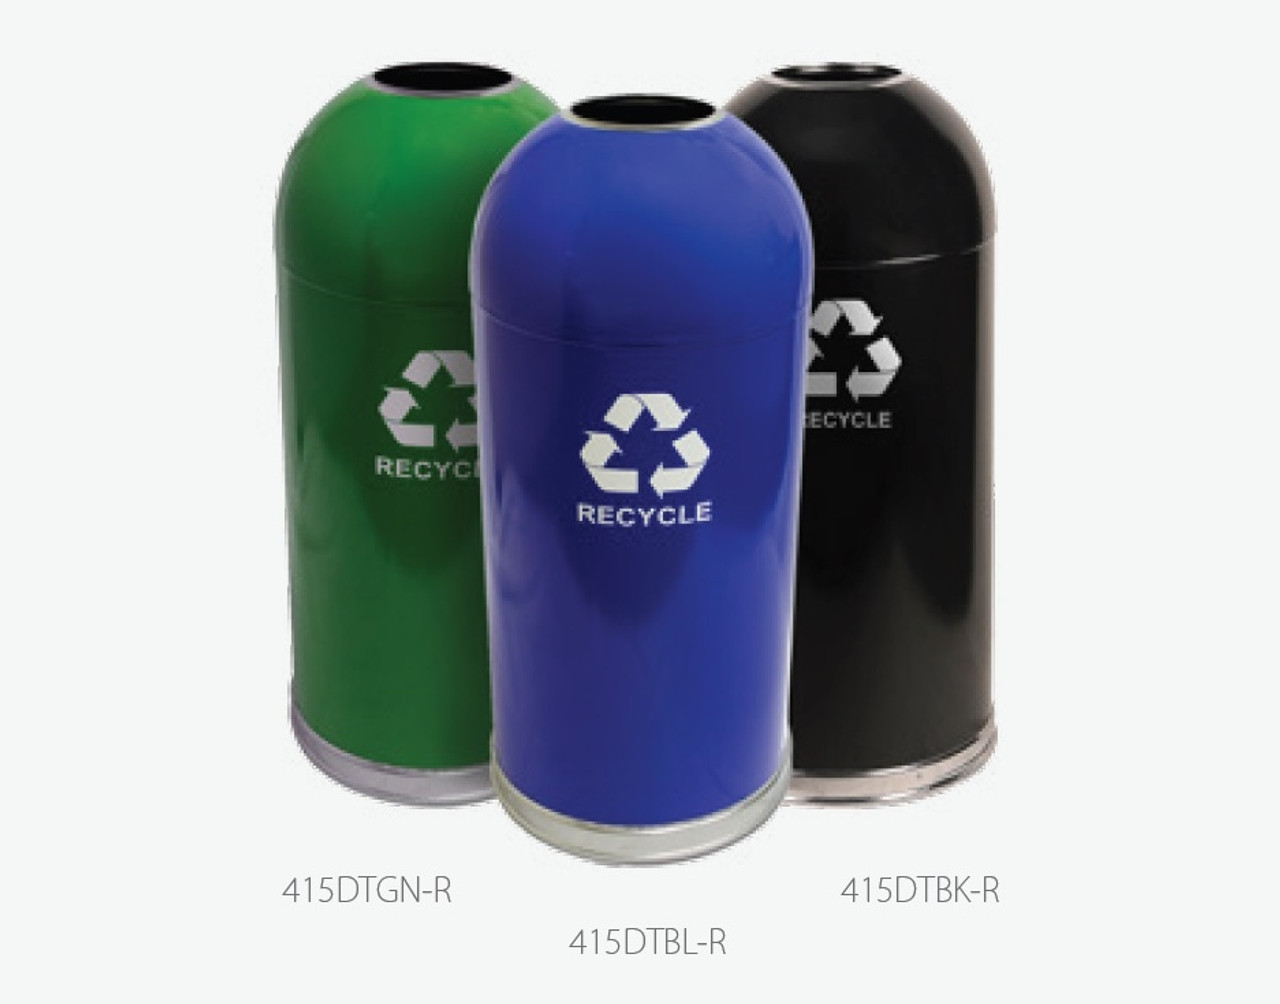 15 Gallon Steel Open Dome Top Recycling Trash Can 415DT-R (3 Colors)